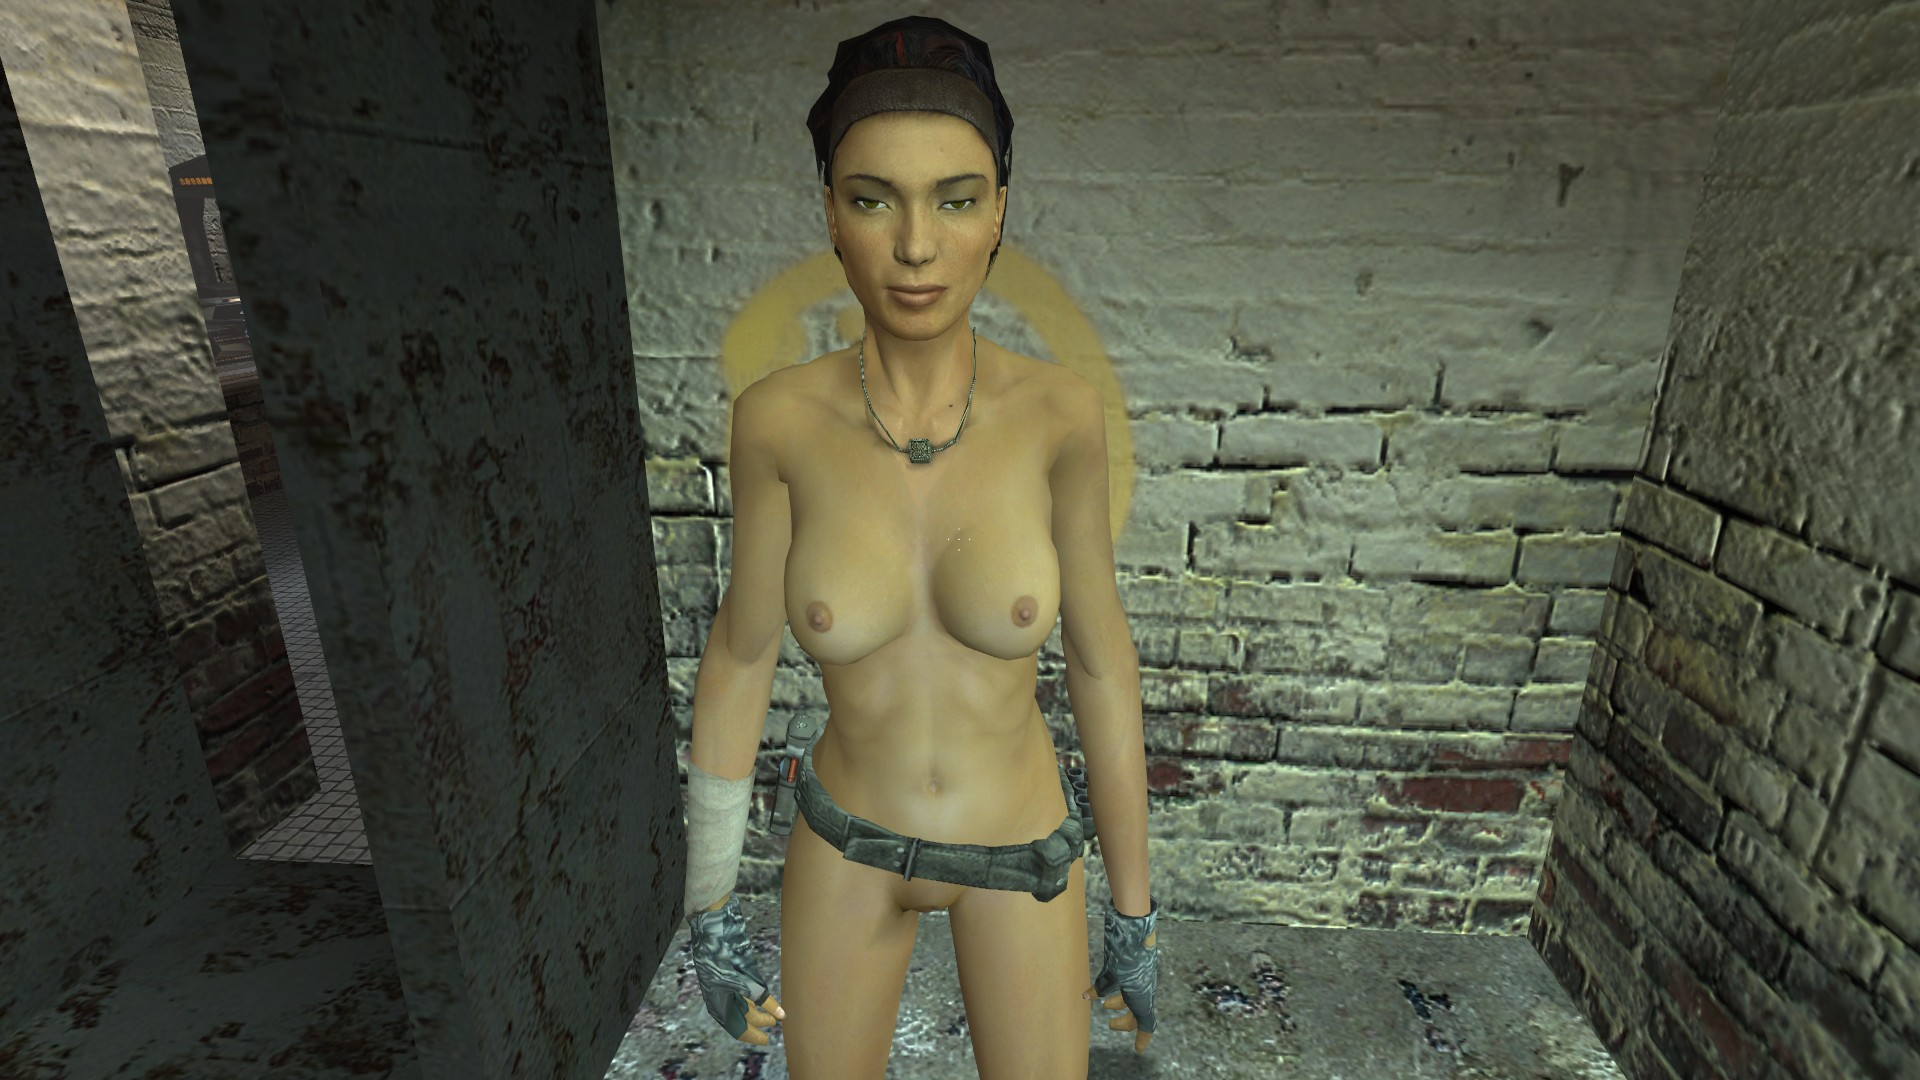 Half life 2 people naked sex clip